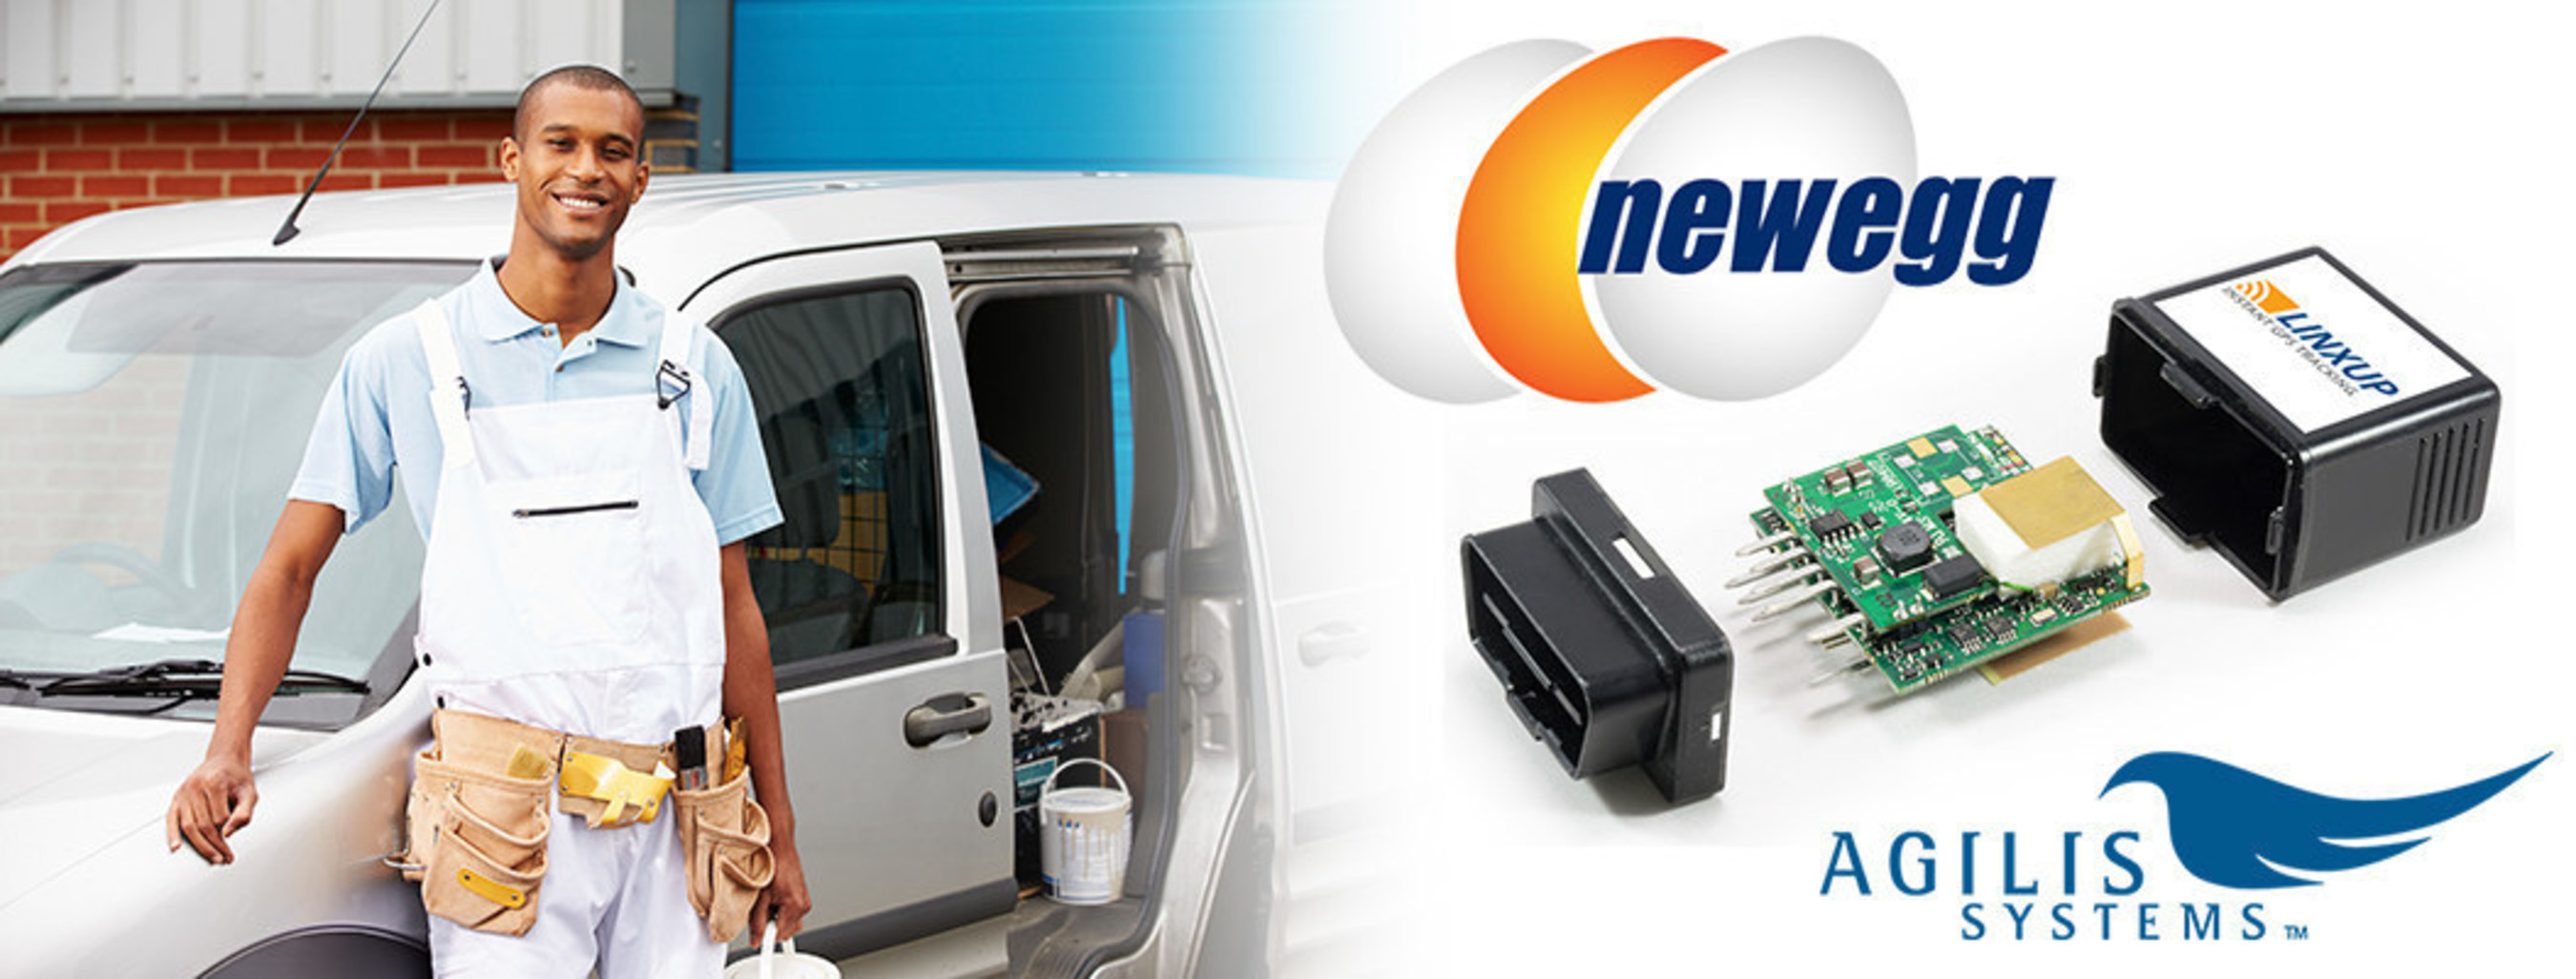 Agilis Systems Expands Online Sales of GPS Tracking Devices to Newegg.com